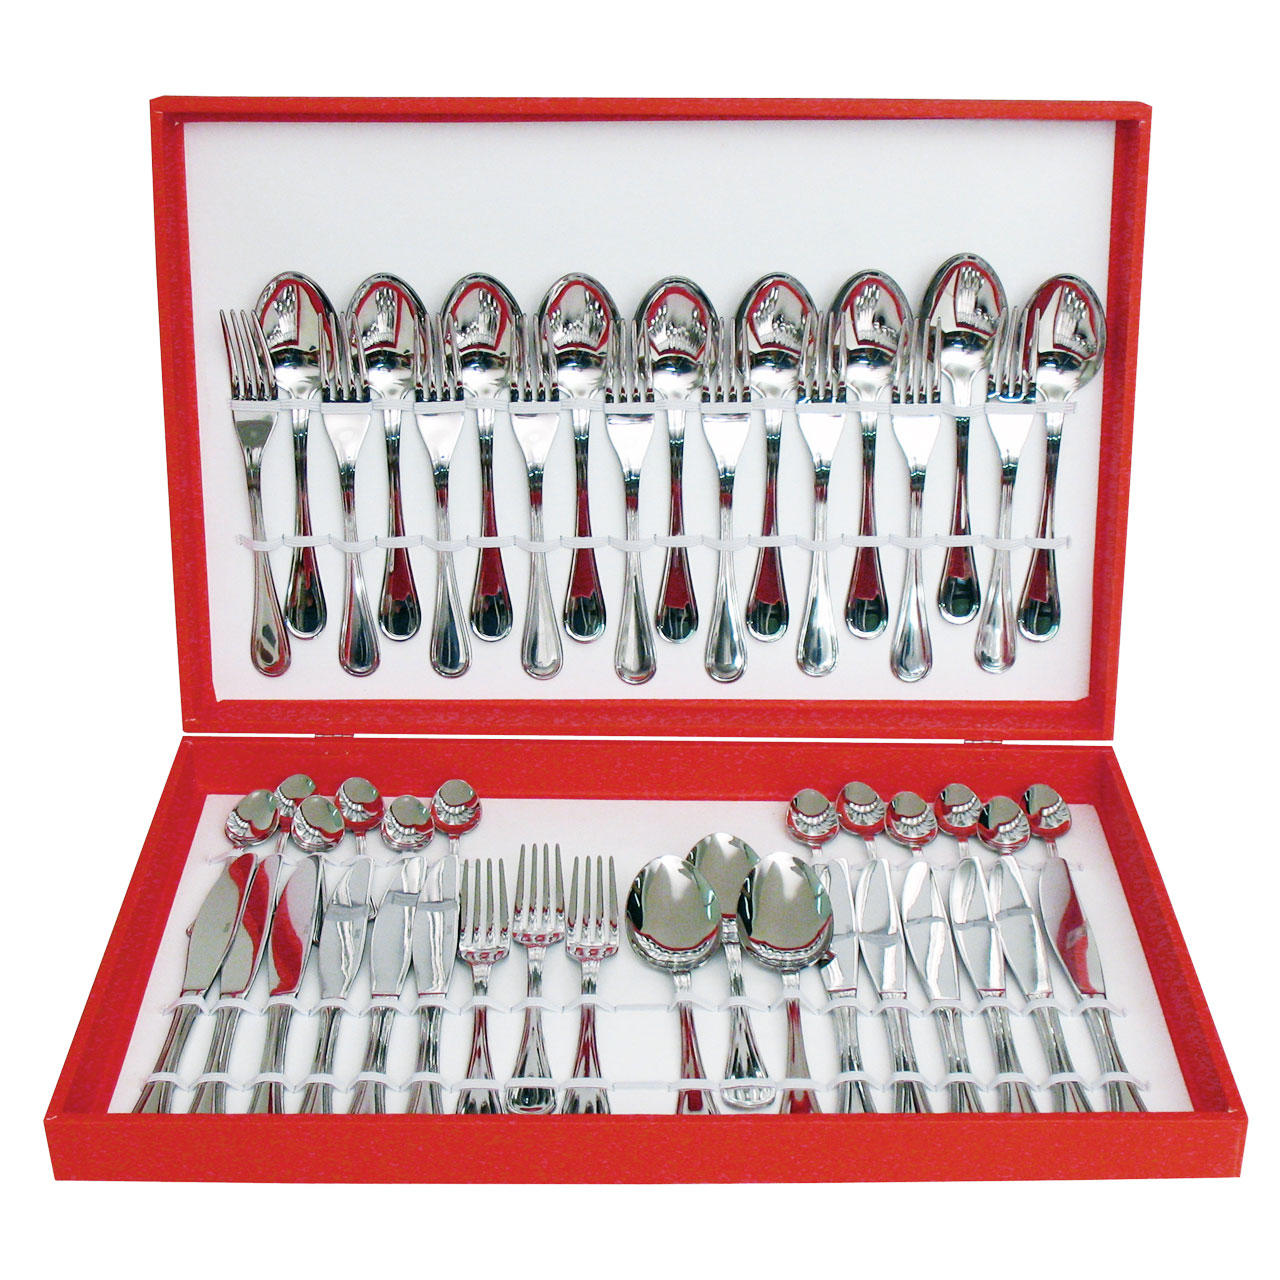 61010048 48 pcs. cutlery set Wooden Box